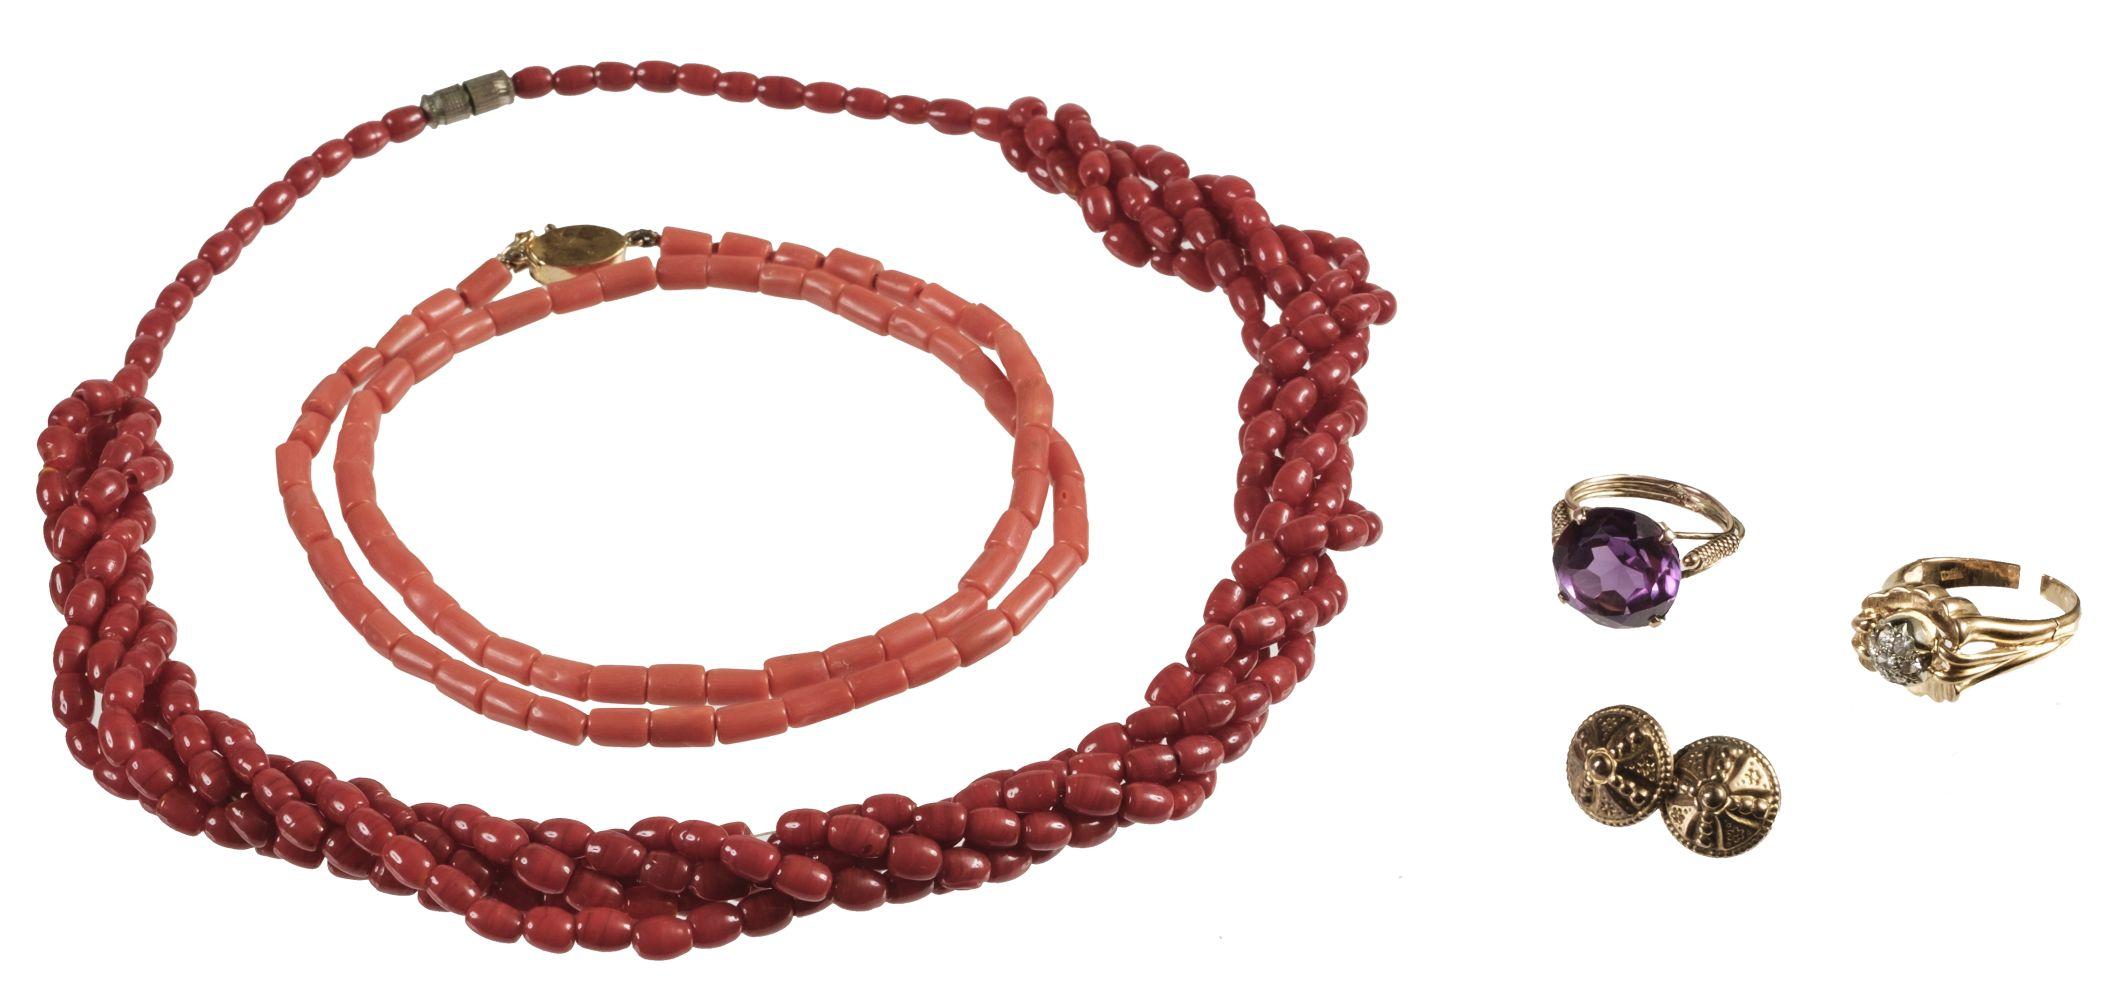 * Mixed Jewellery. Coral necklaces, gold rings and other items